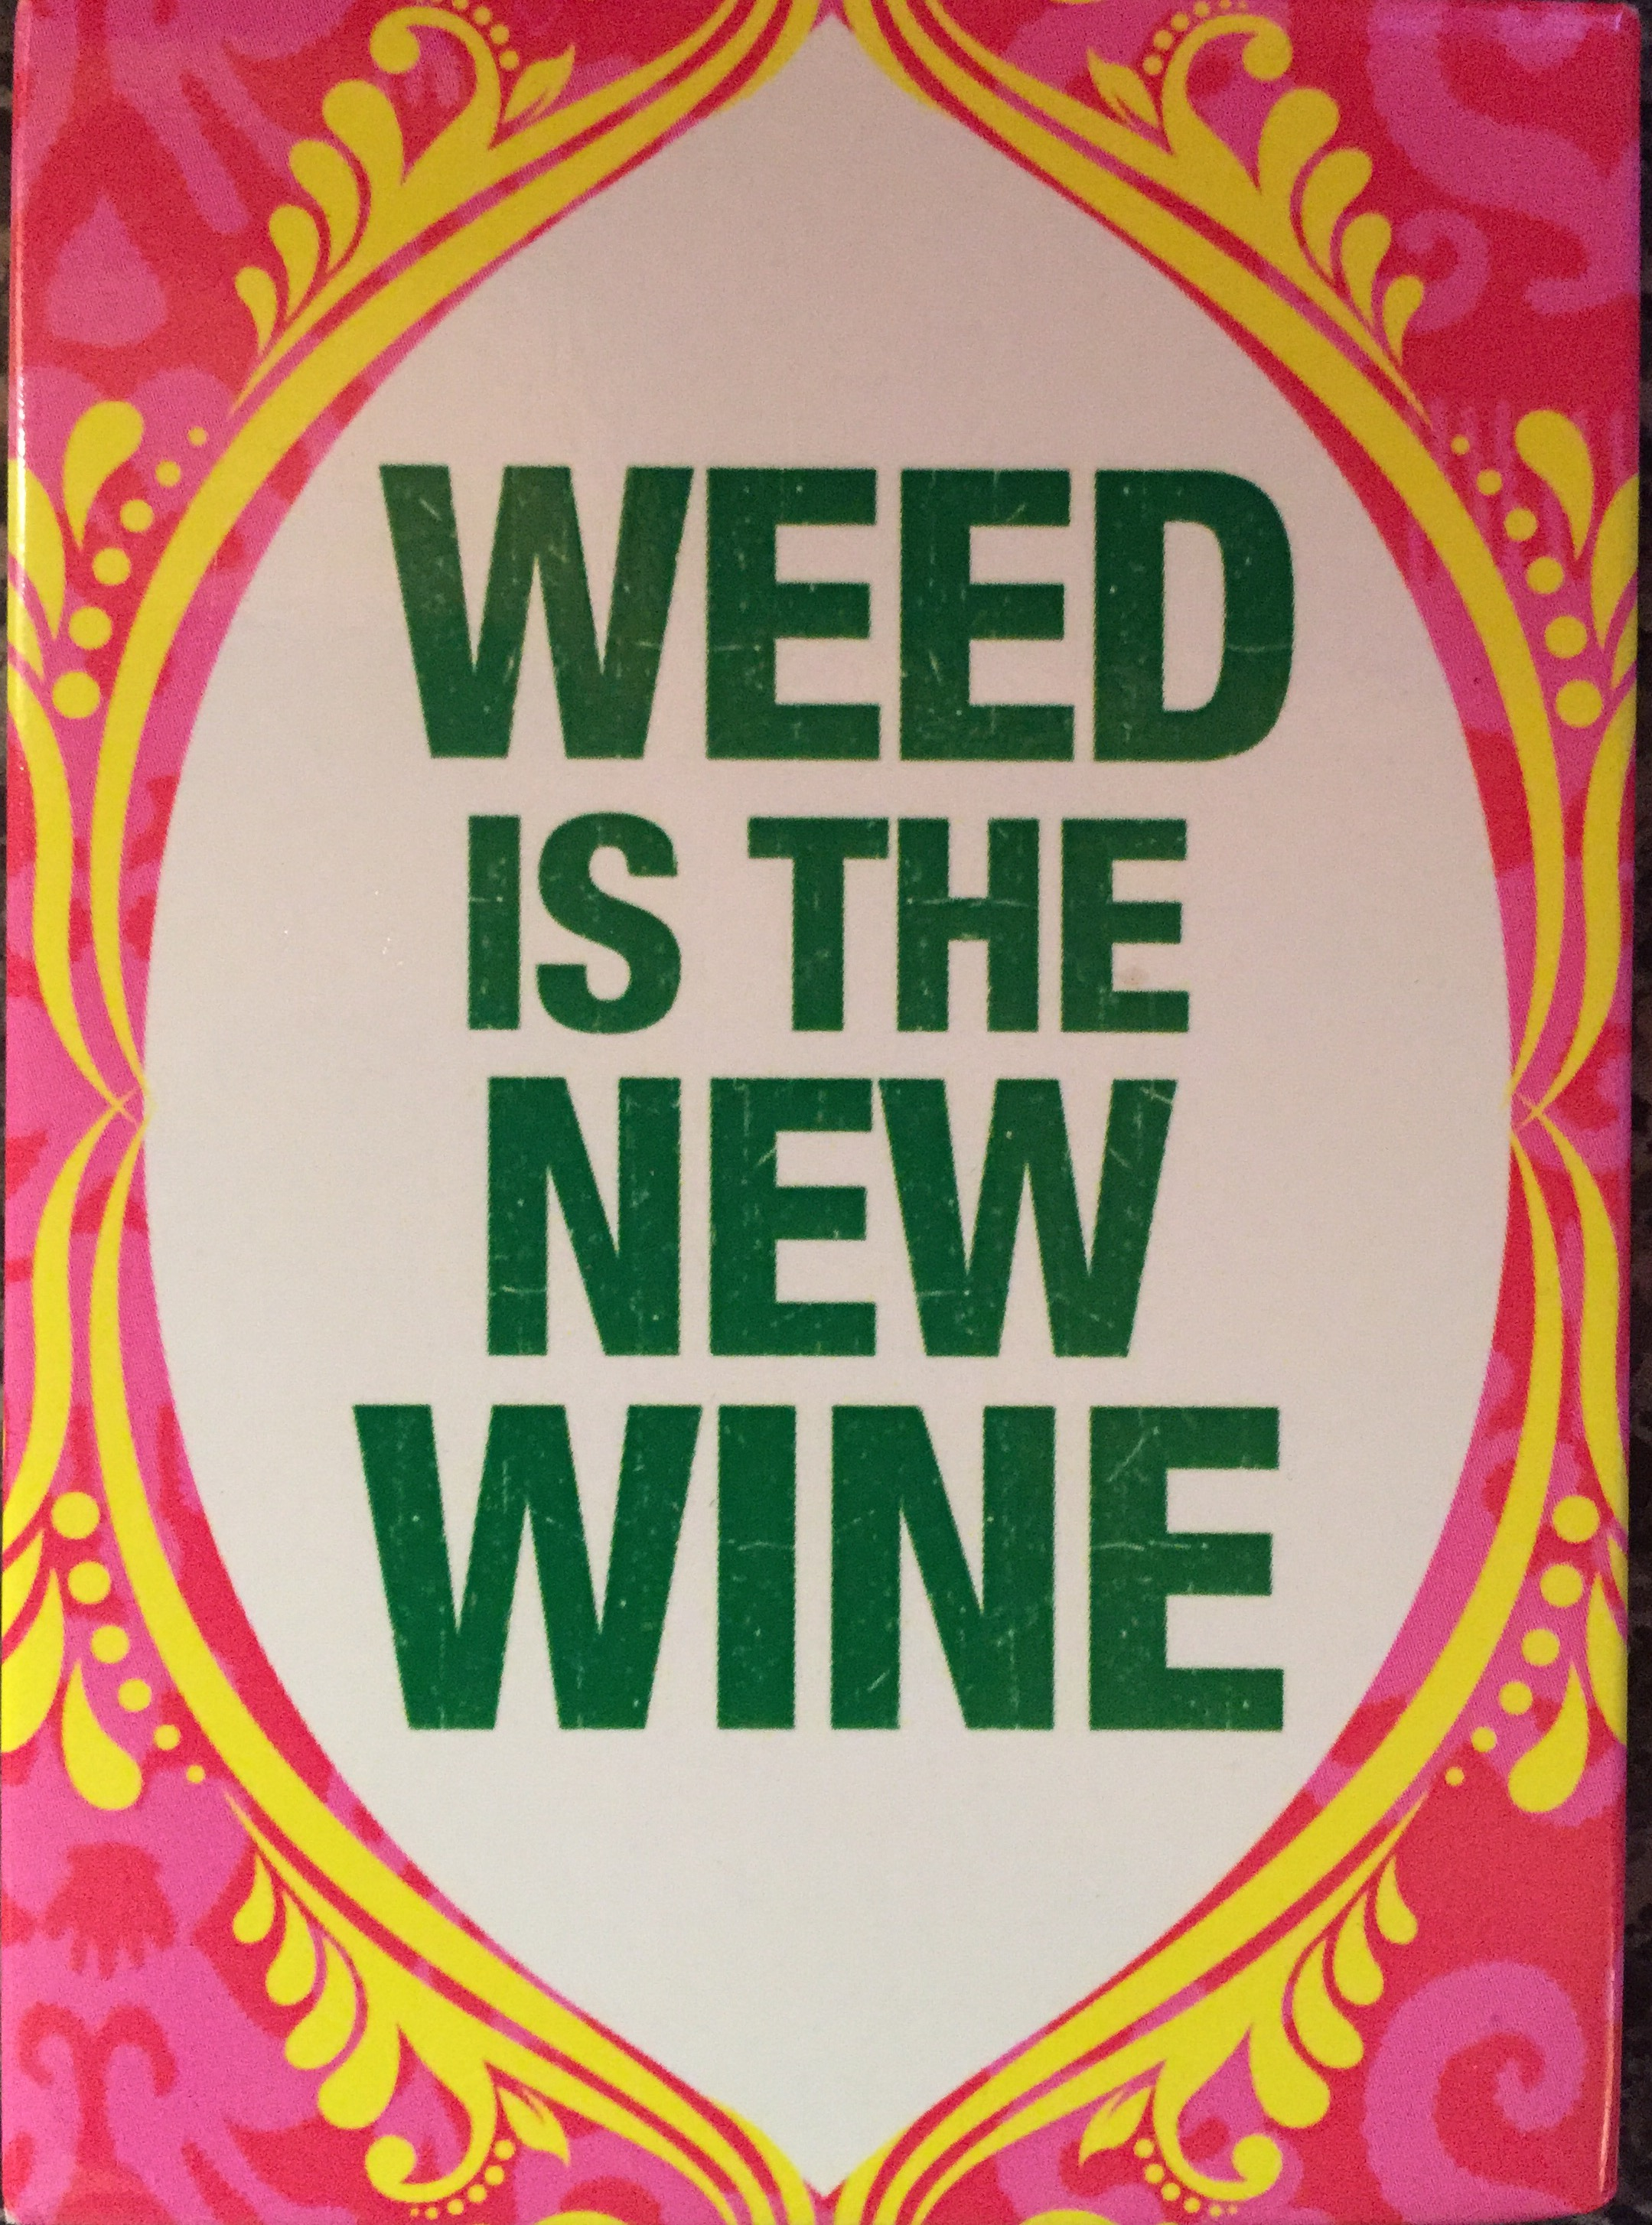 Greenito best marijuana prices deals weed is wine